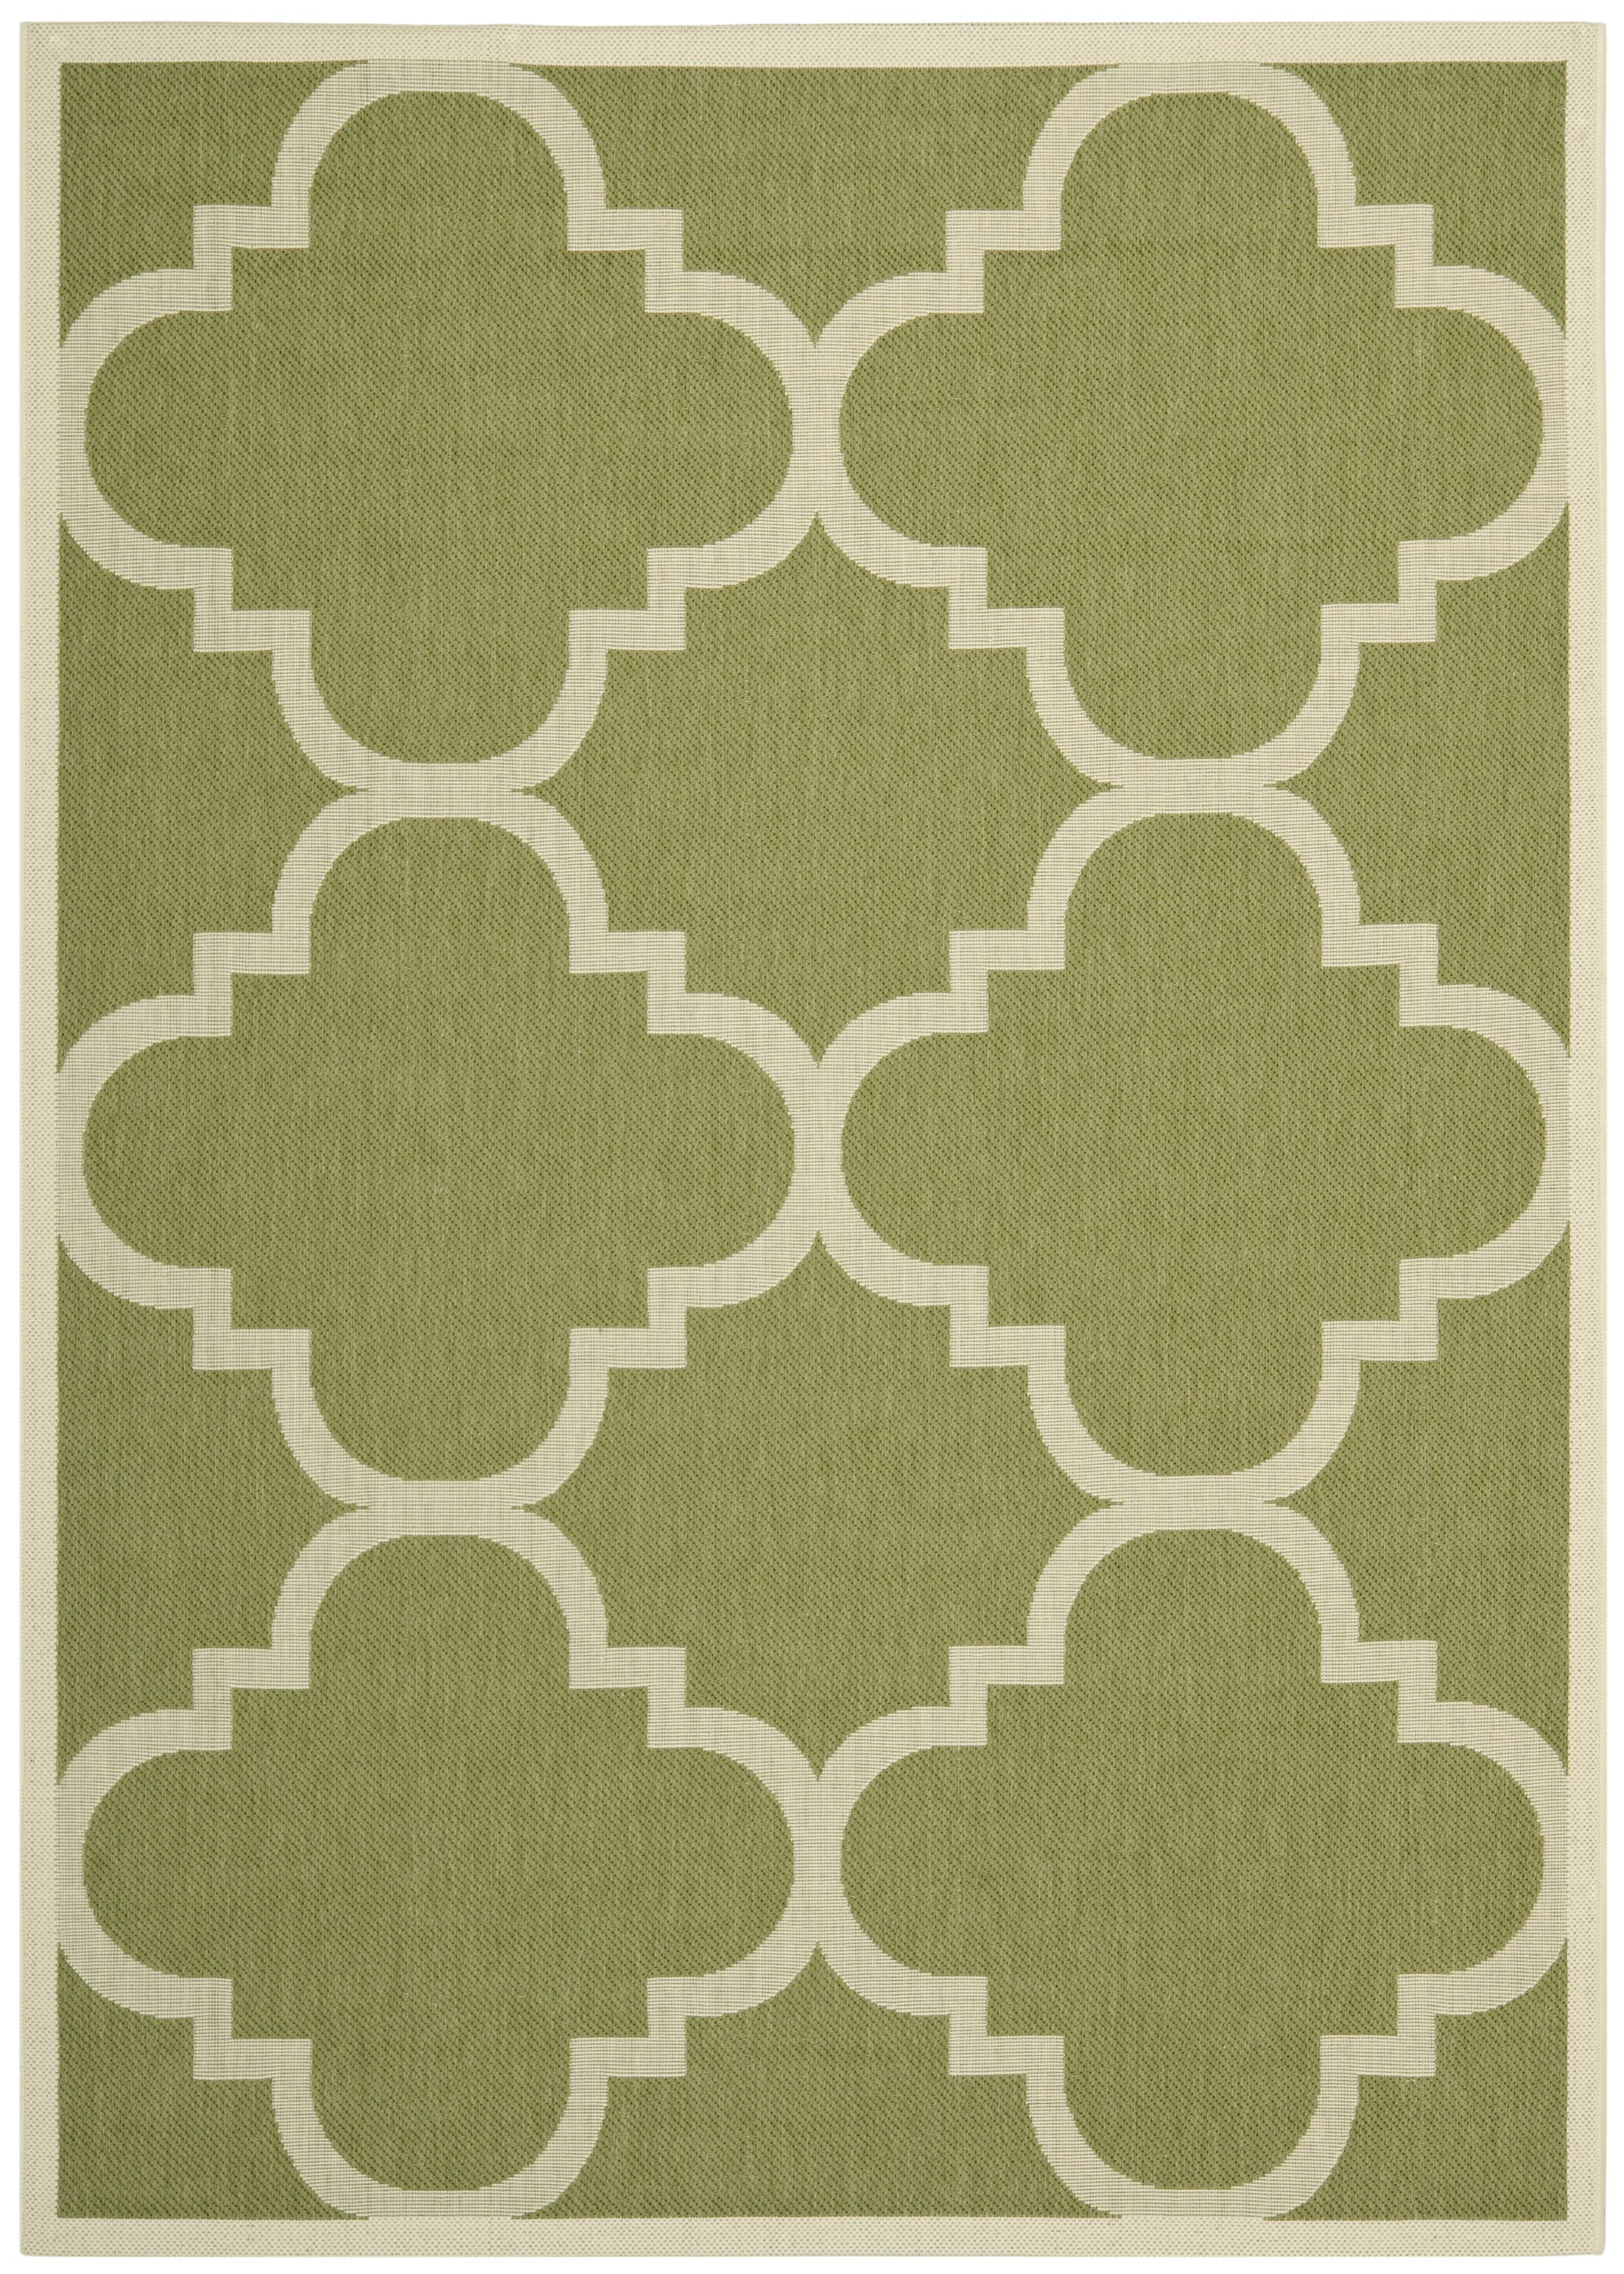 Short Green Area Rug Rug Size: Rectangle 8' x 11'2